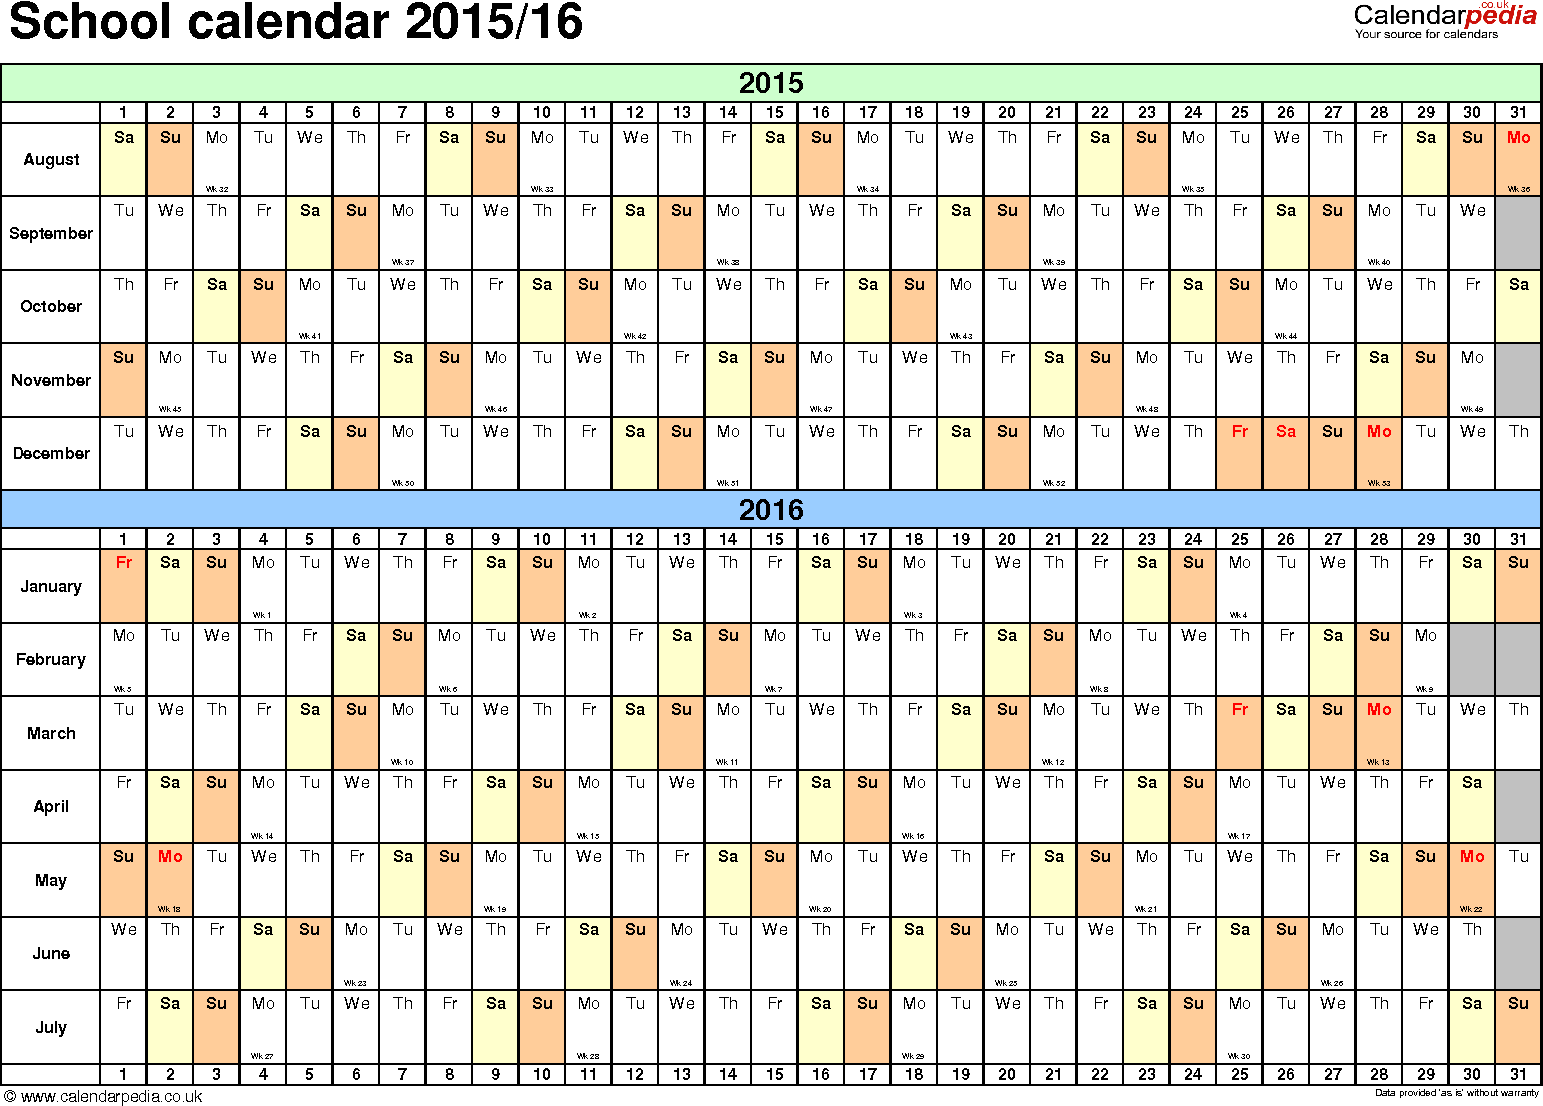 Template 2: School year calendars 2015/16 as PDF template, landscape orientation, A4, 1 page, months horizontally, days vertically, with UK bank holidays and week numbers